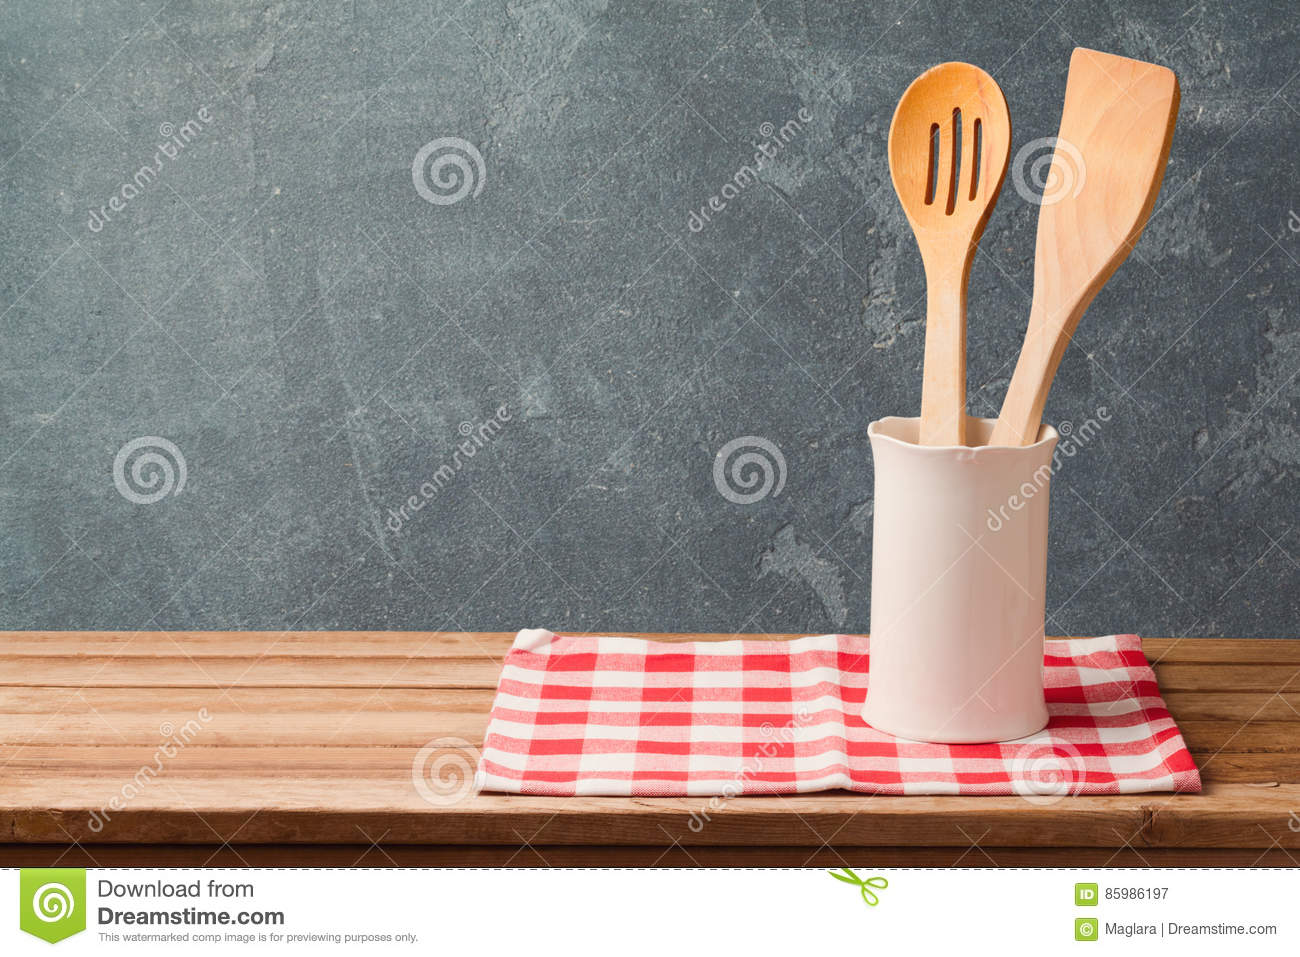 Wooden Kitchen Utensils On Table With Tablecloth Over